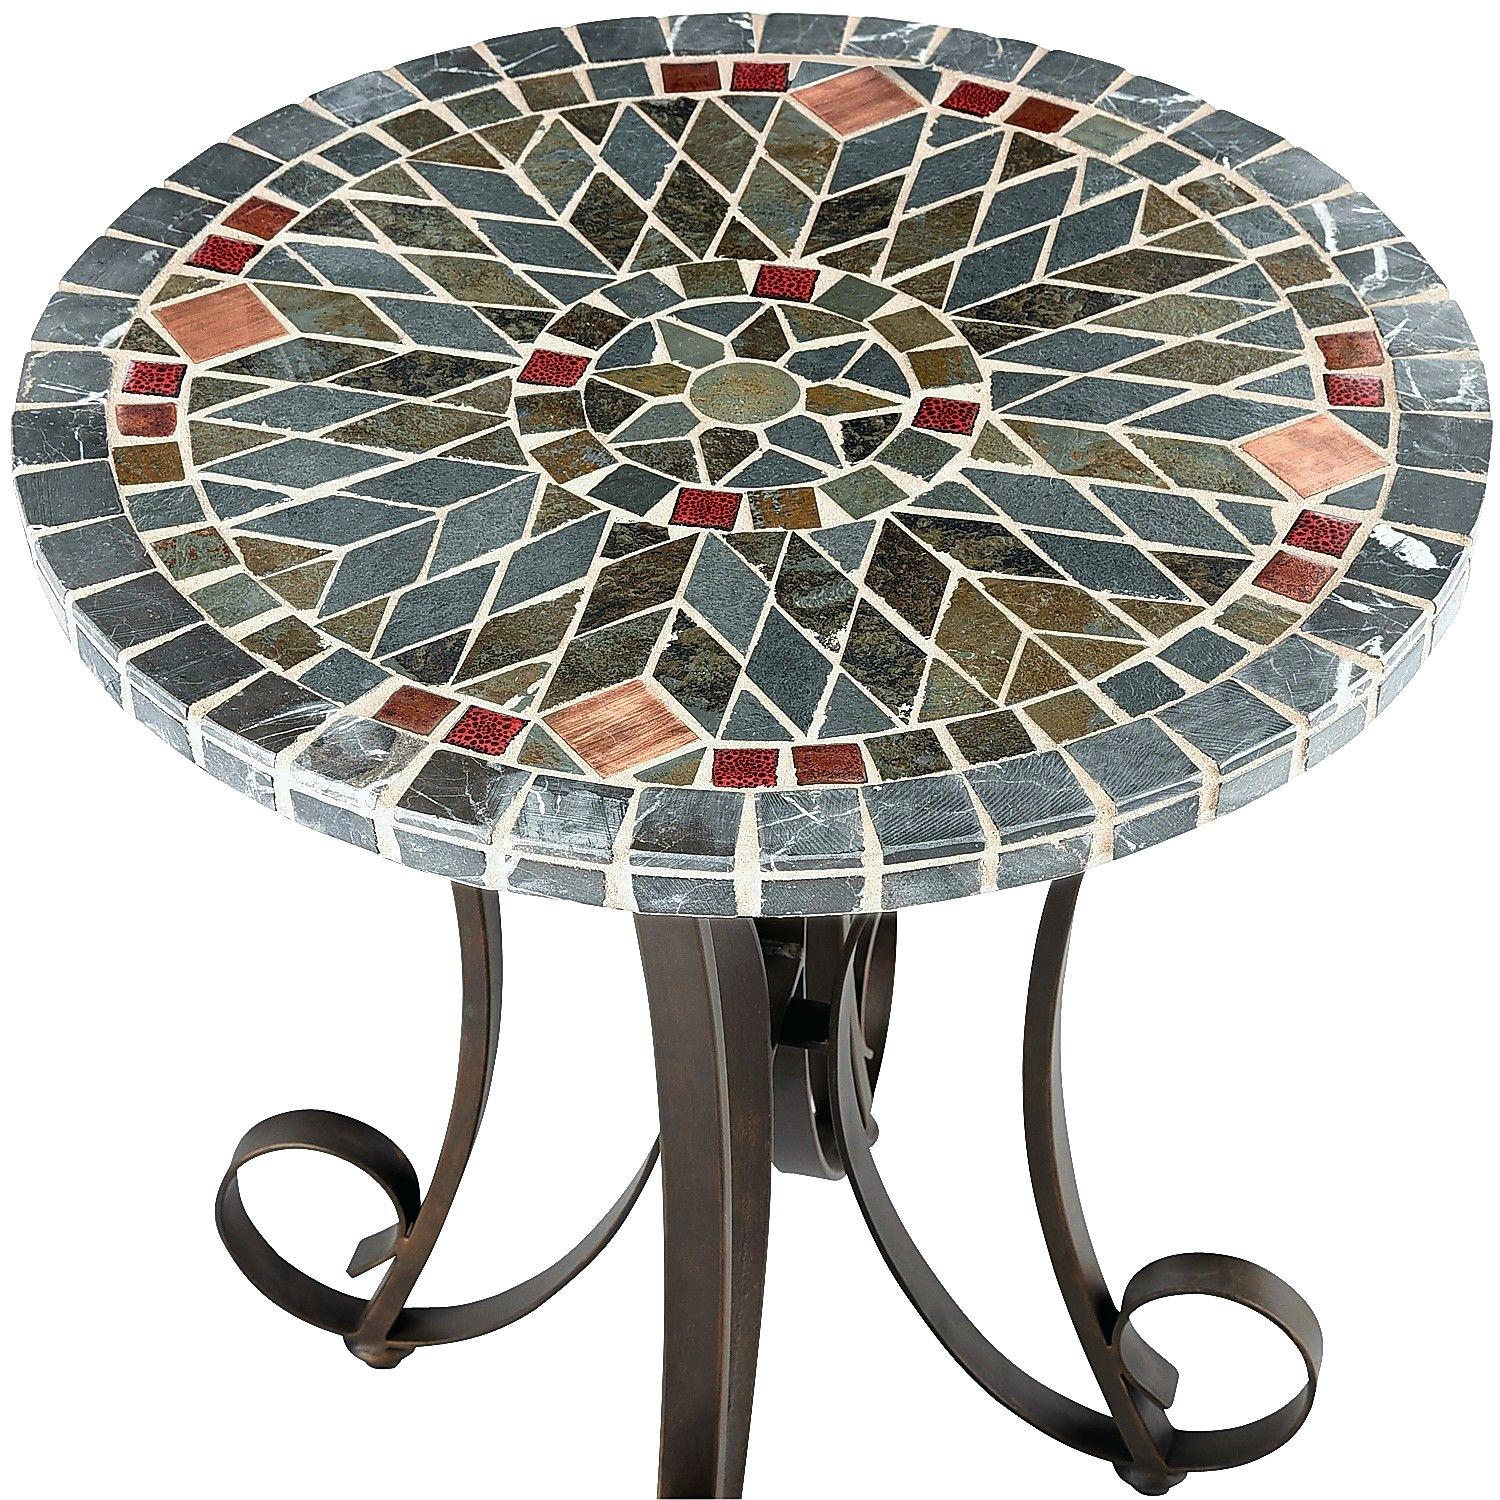 mosaic accent table pier tables kenzie lavorochogan info hoodie jacket low profile lamp target mission coffee bathroom stand round patio chair black mirrored side tiffany lamps